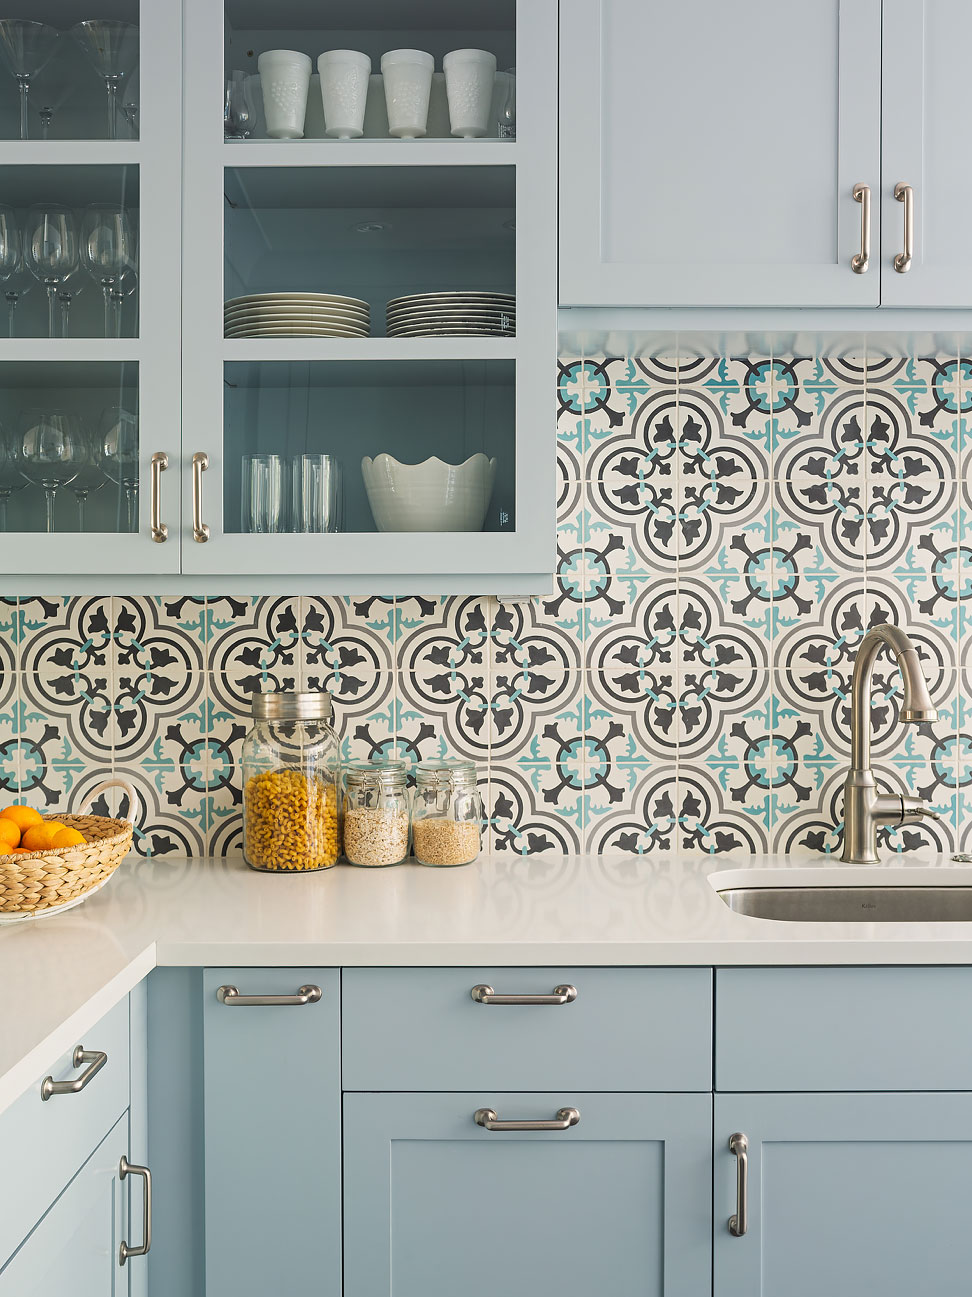 The Cement Tile Backsplash How The Look Has Changed Over The Years Granada Tile Cement Tile Blog Tile Ideas Tips And More Kitchen Backsplash Trends Kitchen Decor Tiles Trendy Kitchen Backsplash